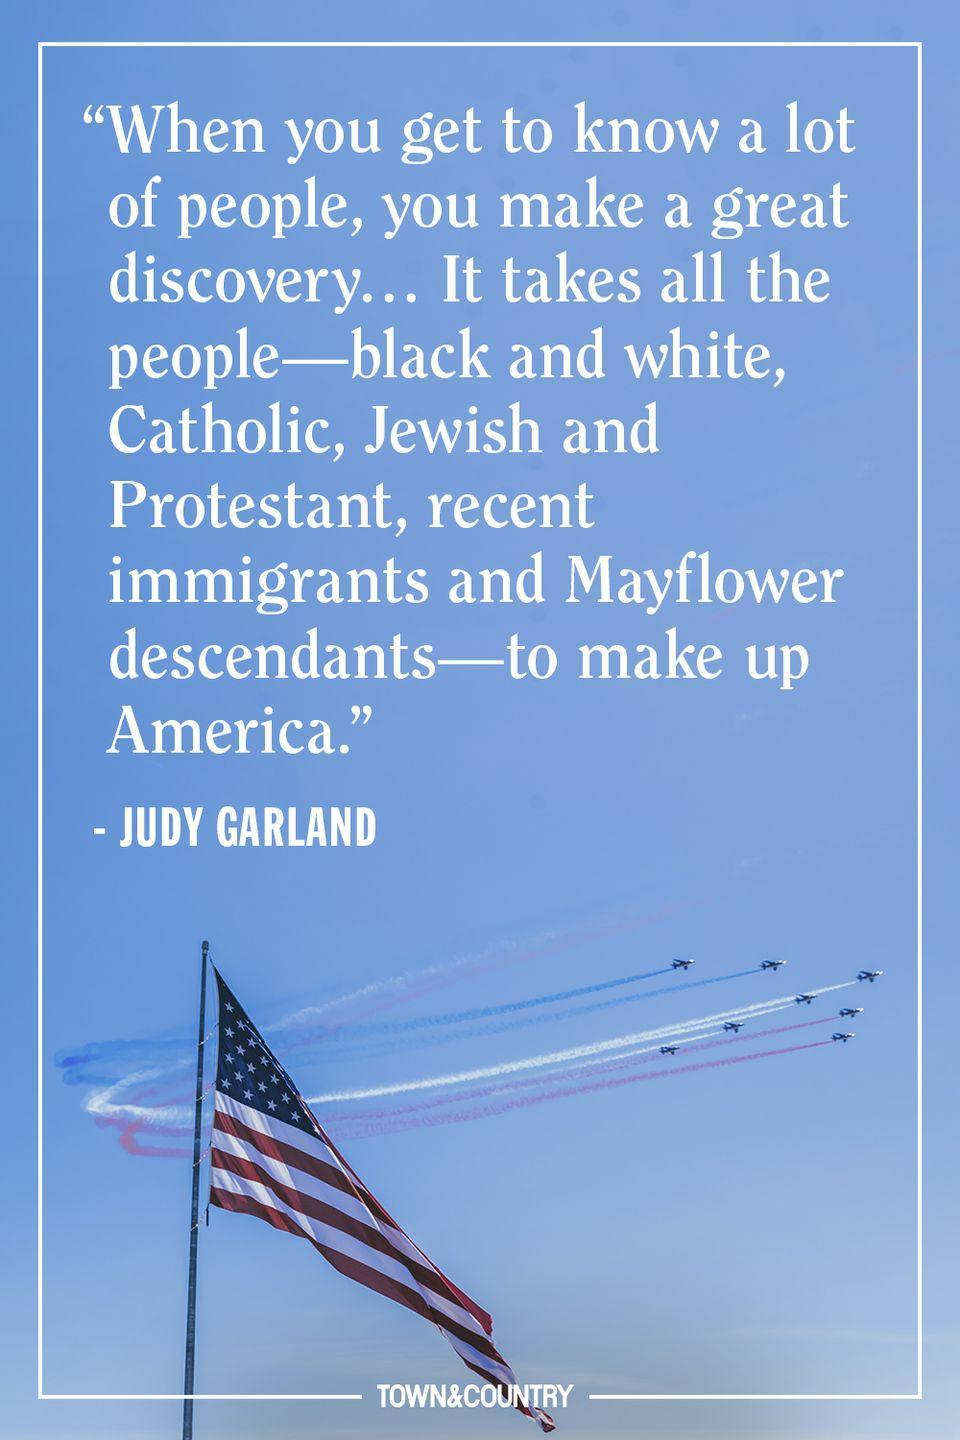 """<p>""""When you get to know a lot of people, you make a great discovery… It takes all the people—black and white, Catholic, Jewish and Protestant, recent immigrants and Mayflower descendants—to make up America.""""</p><p>— <em>Judy Garland</em></p>"""